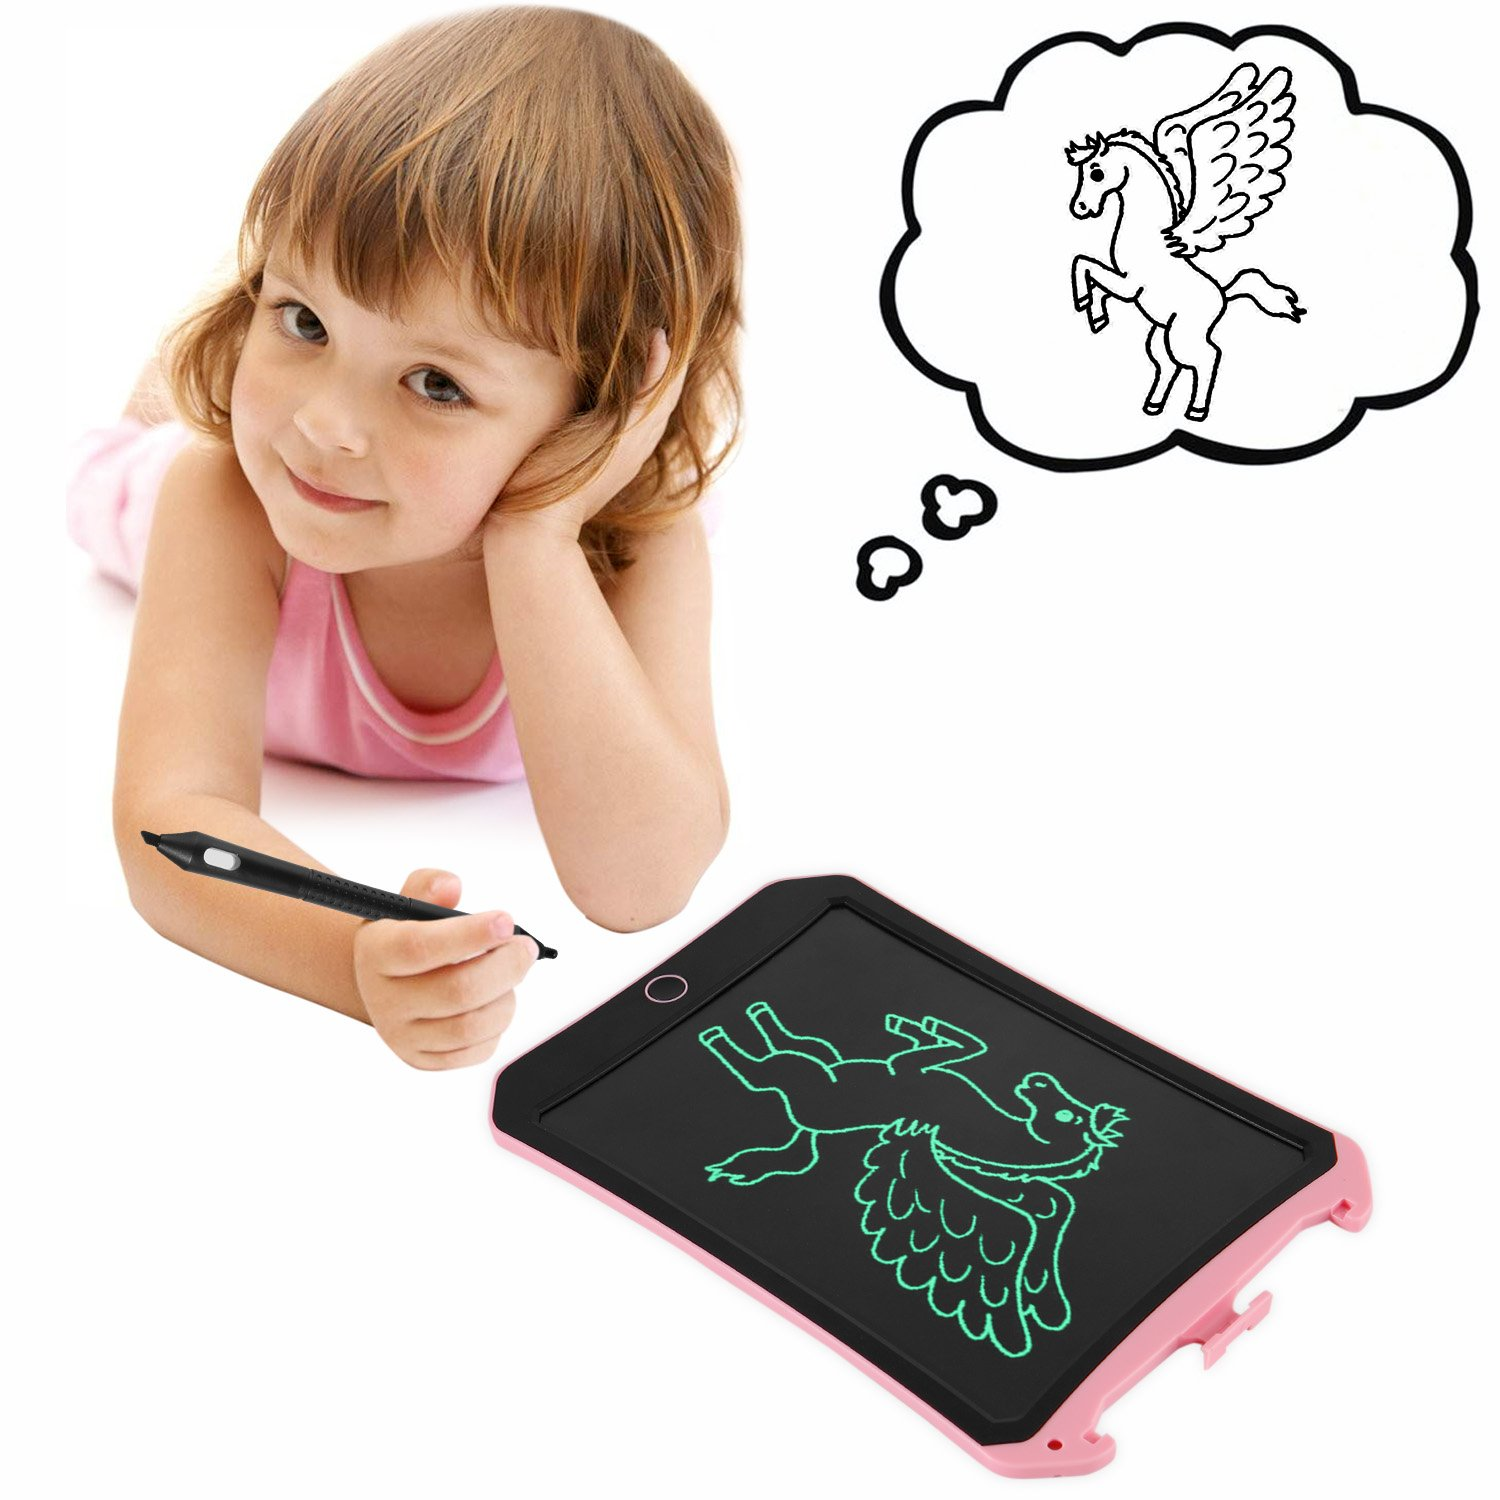 ILINKMUCH Newest 8.5-inch LCD Writing Tablet with Cool Robot Element Design Electronic Writing Board for Kid and Adults Happy Drawing and Working Saving Papers